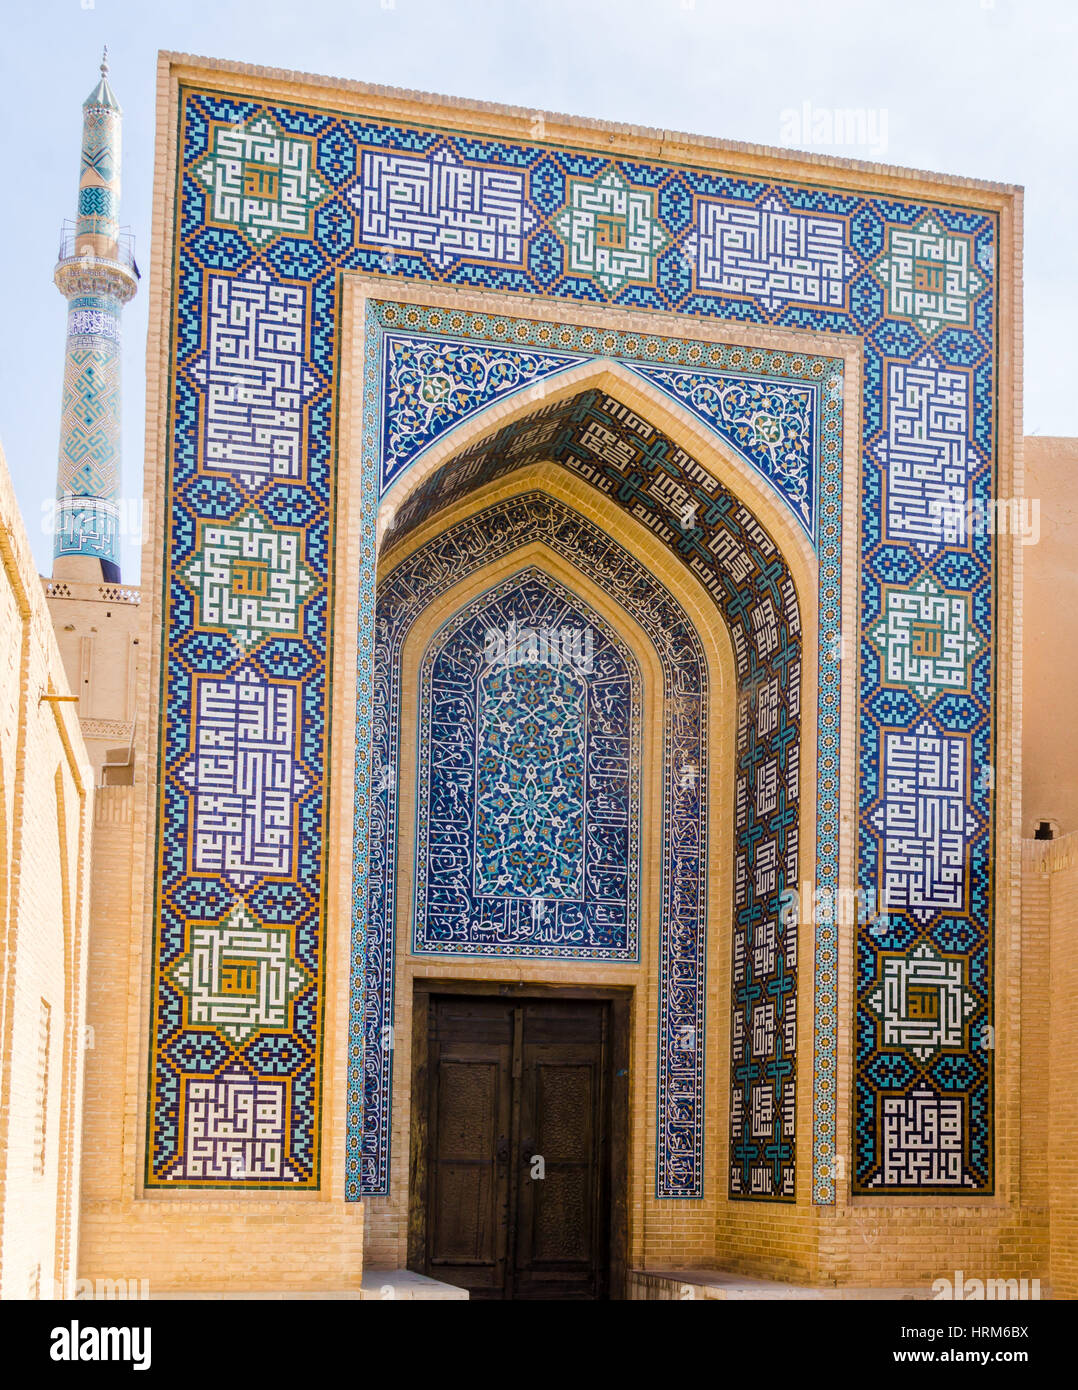 back entrance of jame Mosque in Yazd - Iran - Stock Image